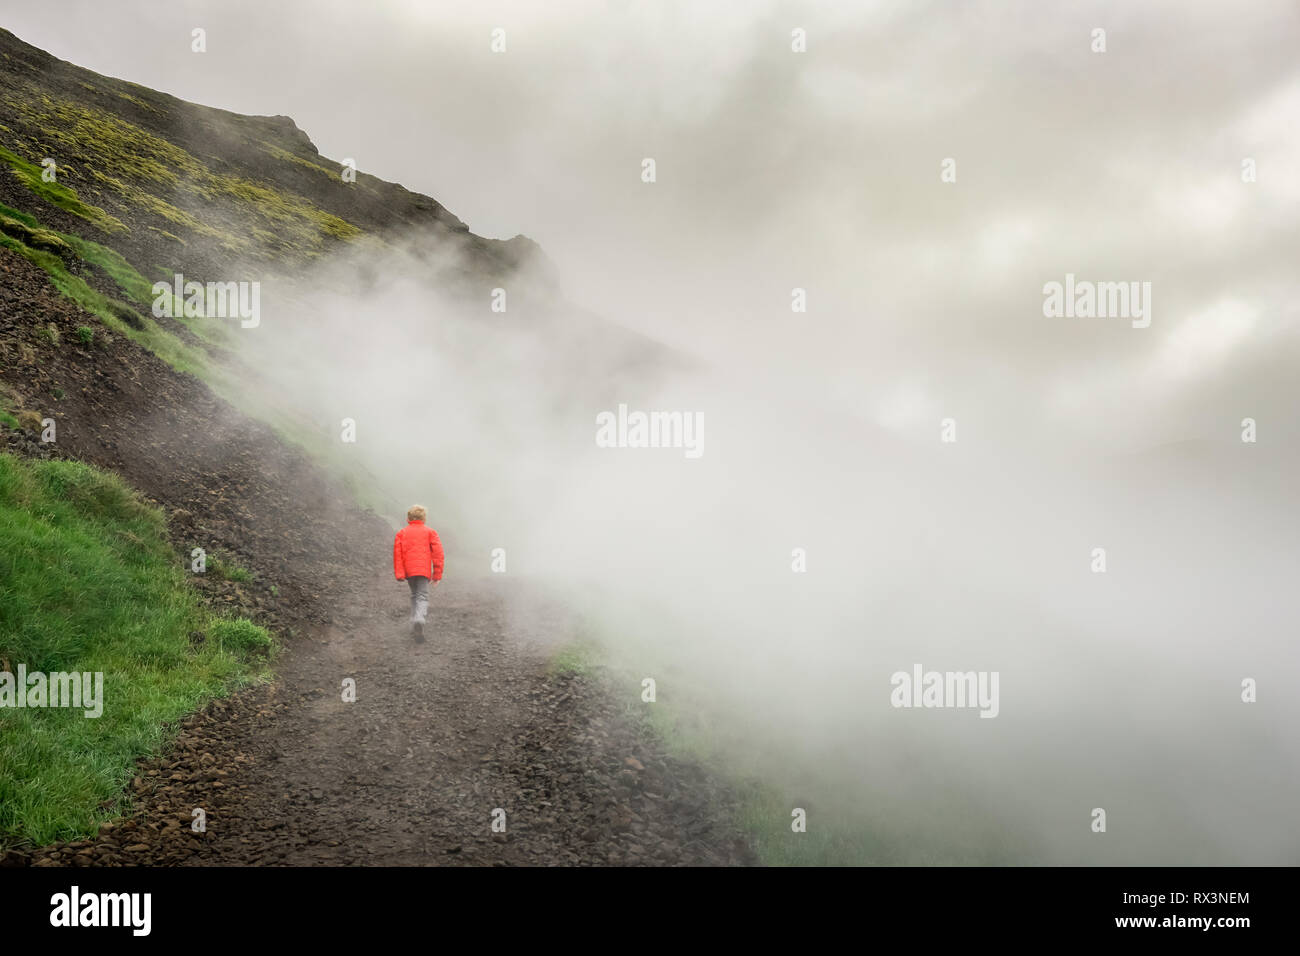 Boy bravely journeys alone on Iceland adventure in steamy valley - Stock Image